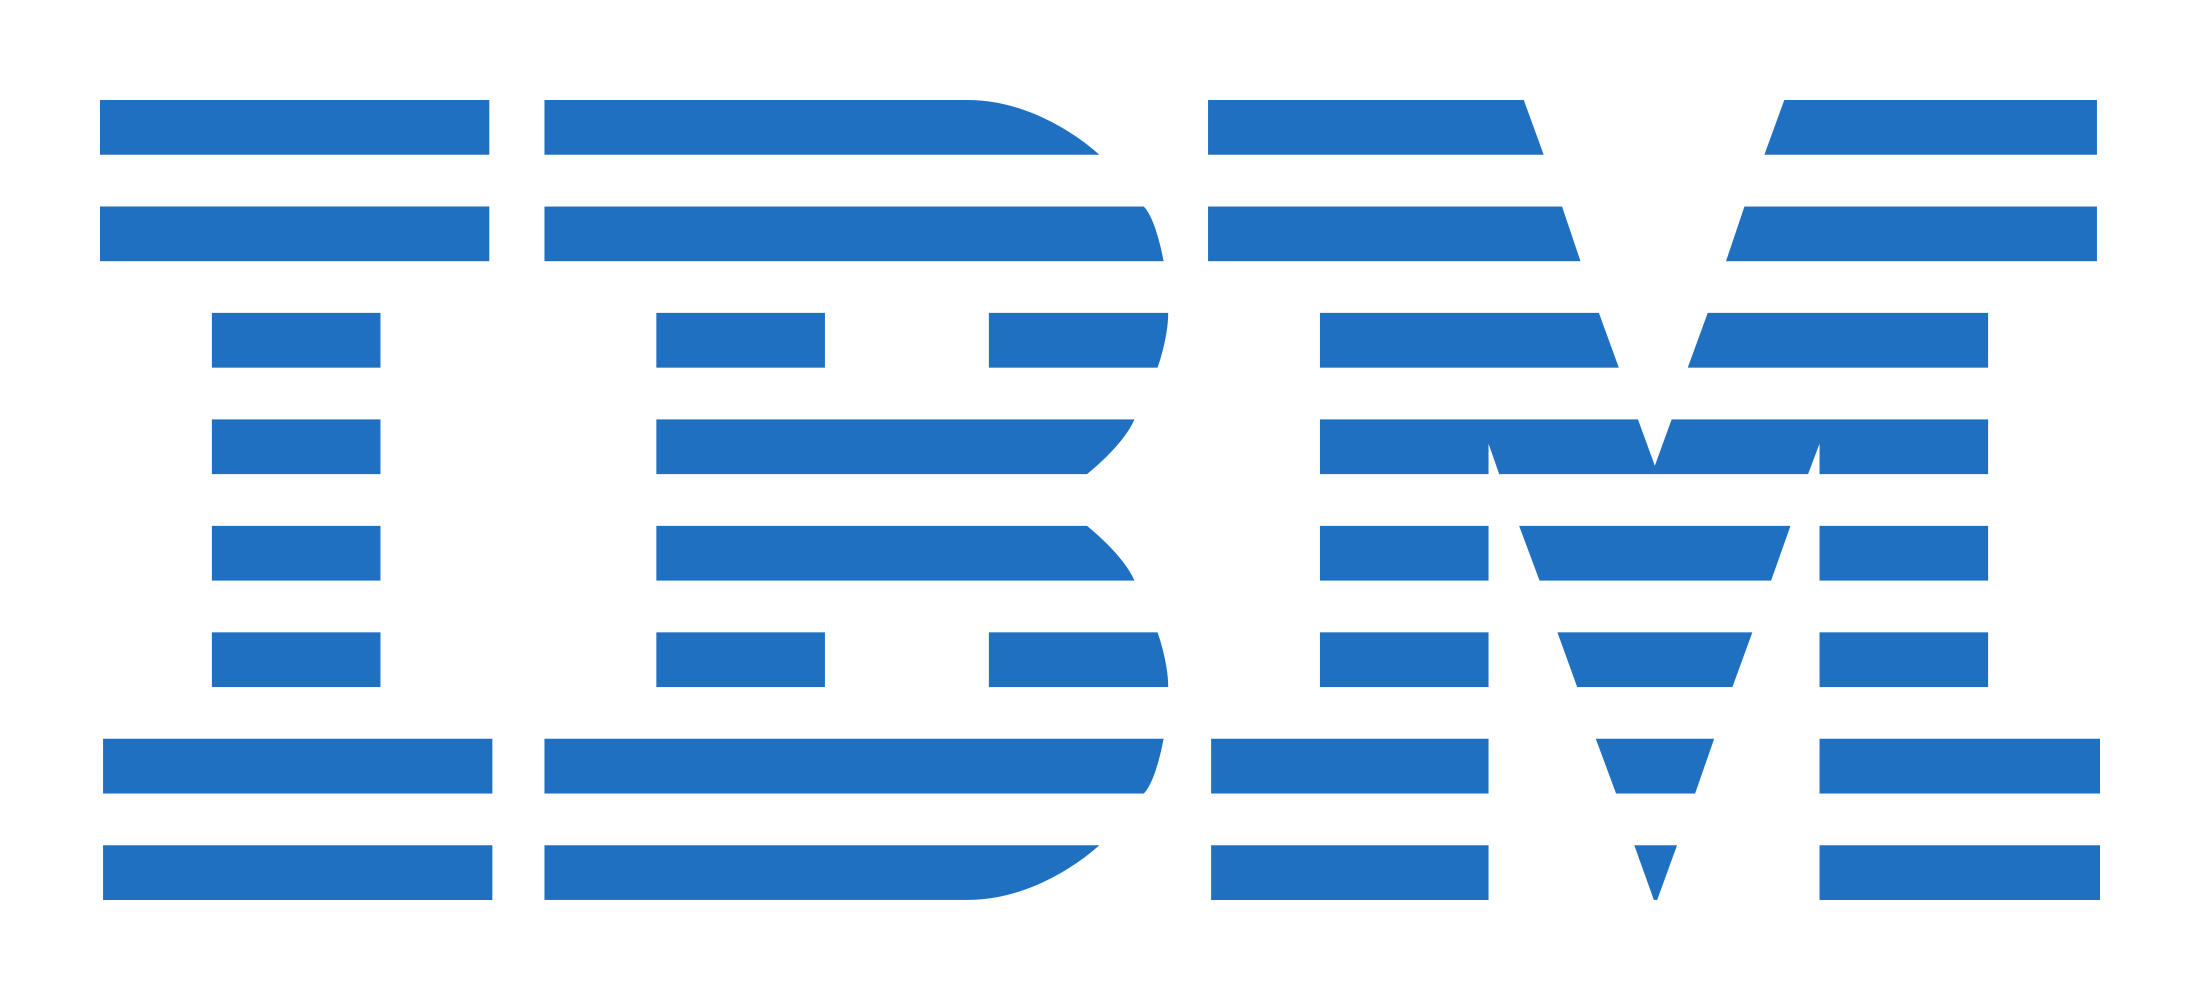 Image result for ibm stock logo""